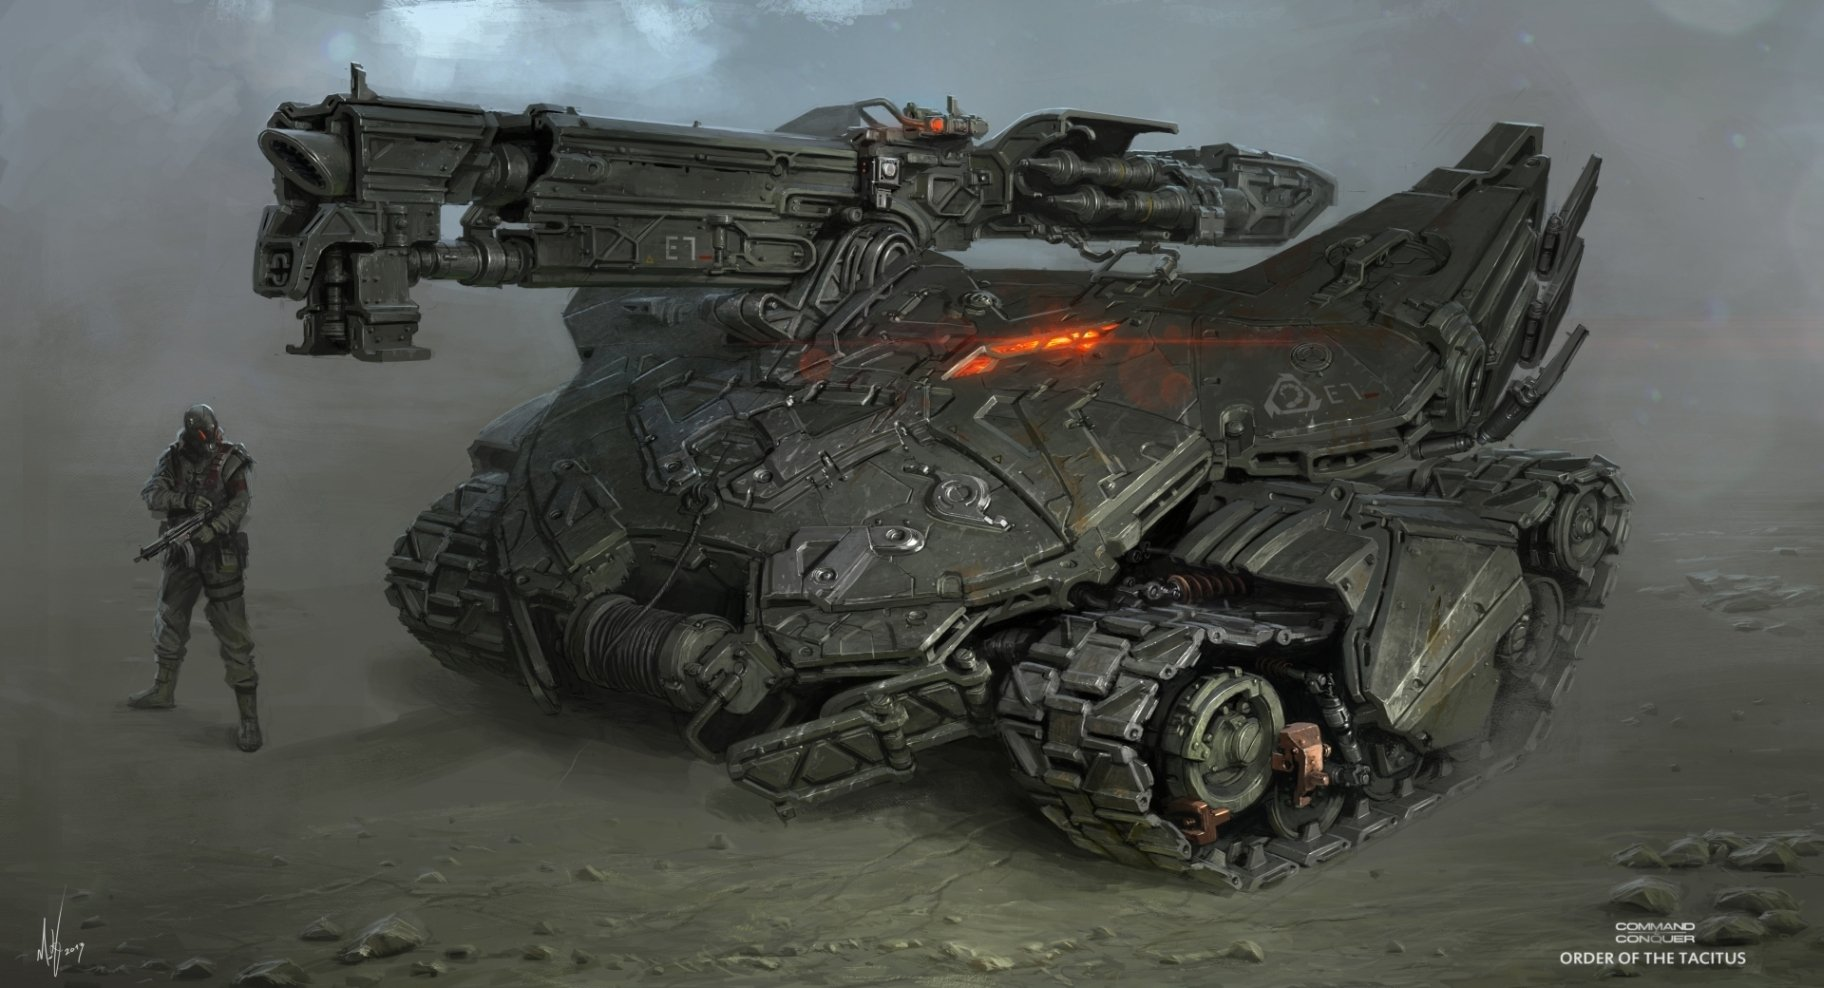 The Superb Sci-Fi Creations of Michal Kus